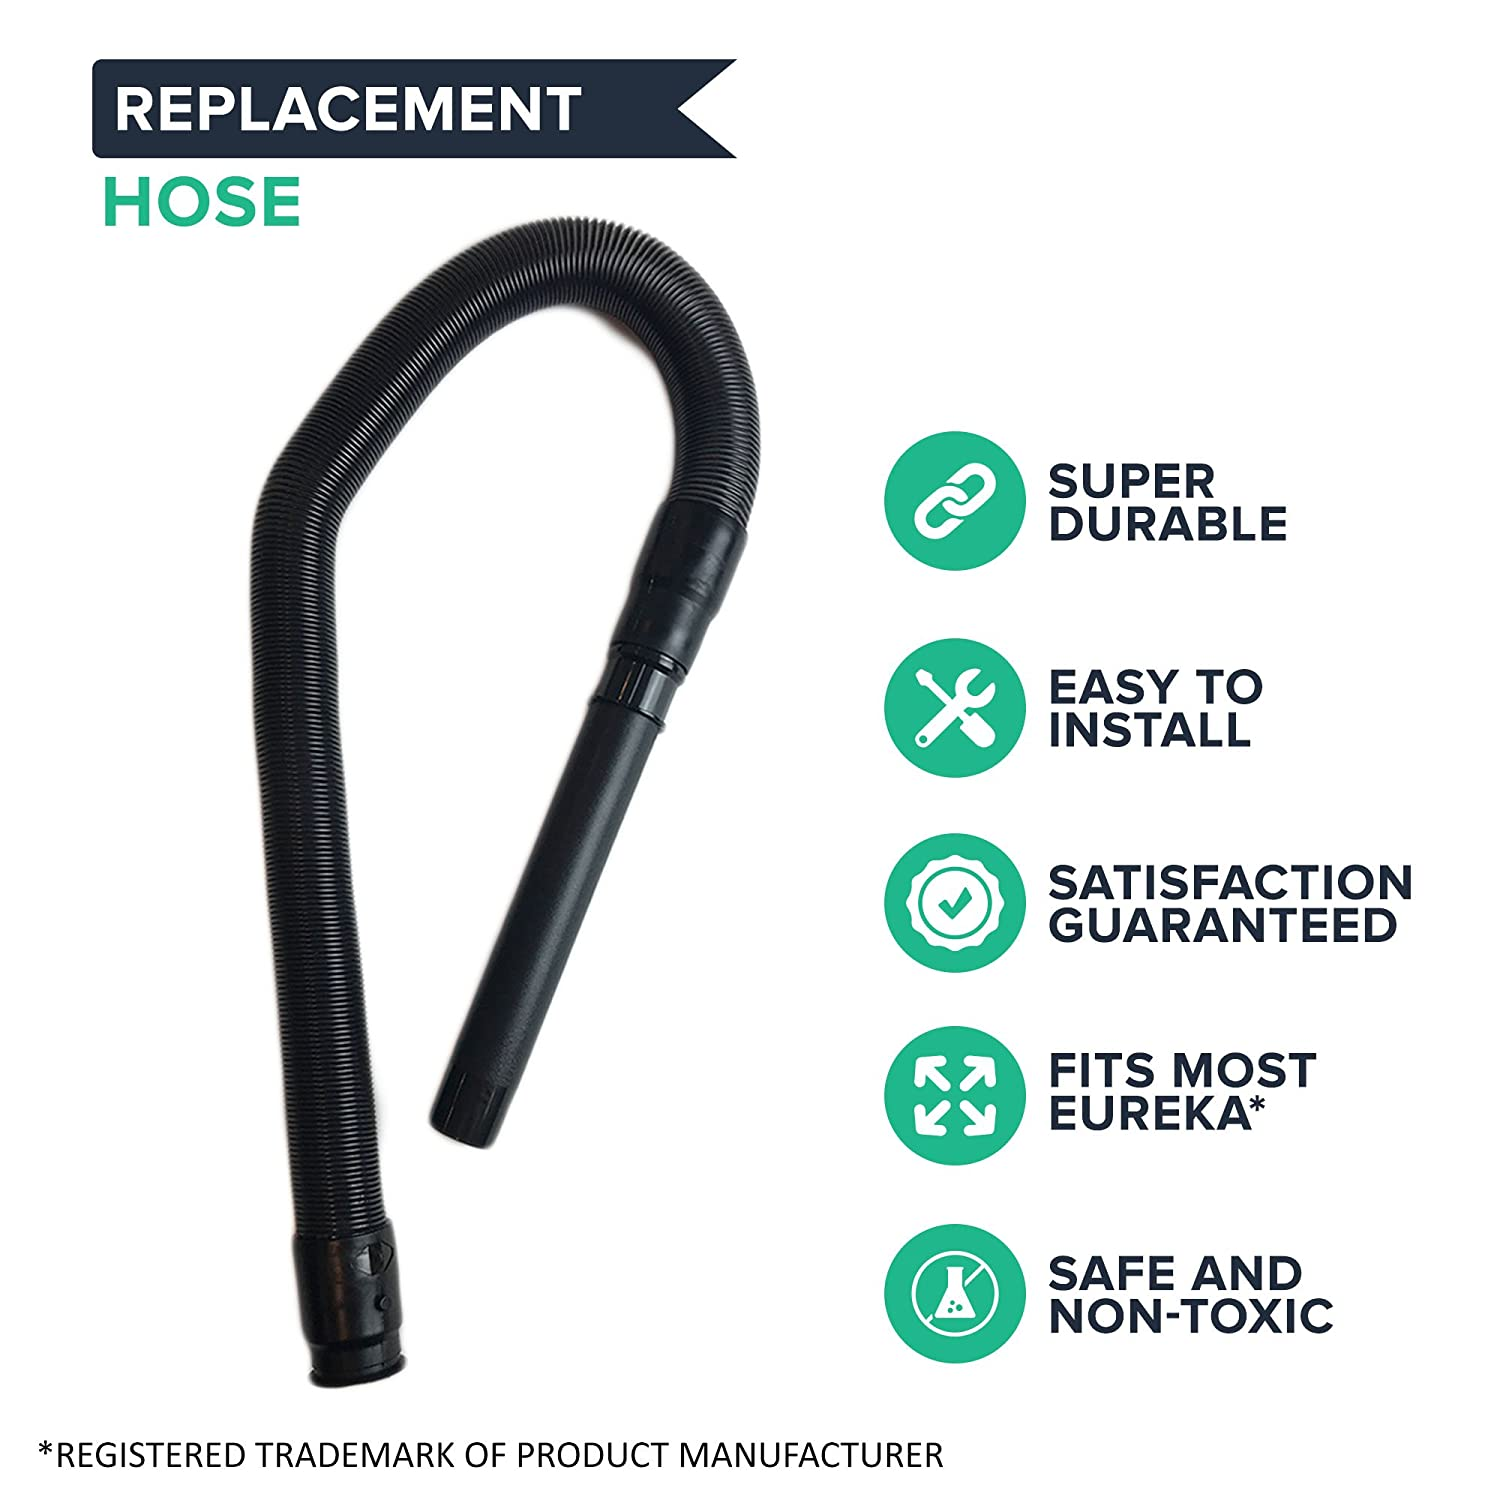 Amazon.com - Replacement for Eureka Smart Vac Hose Fits Whirlwind 4870  Smart Vacs, Compatible With Part # 61247-1, by Think Crucial -